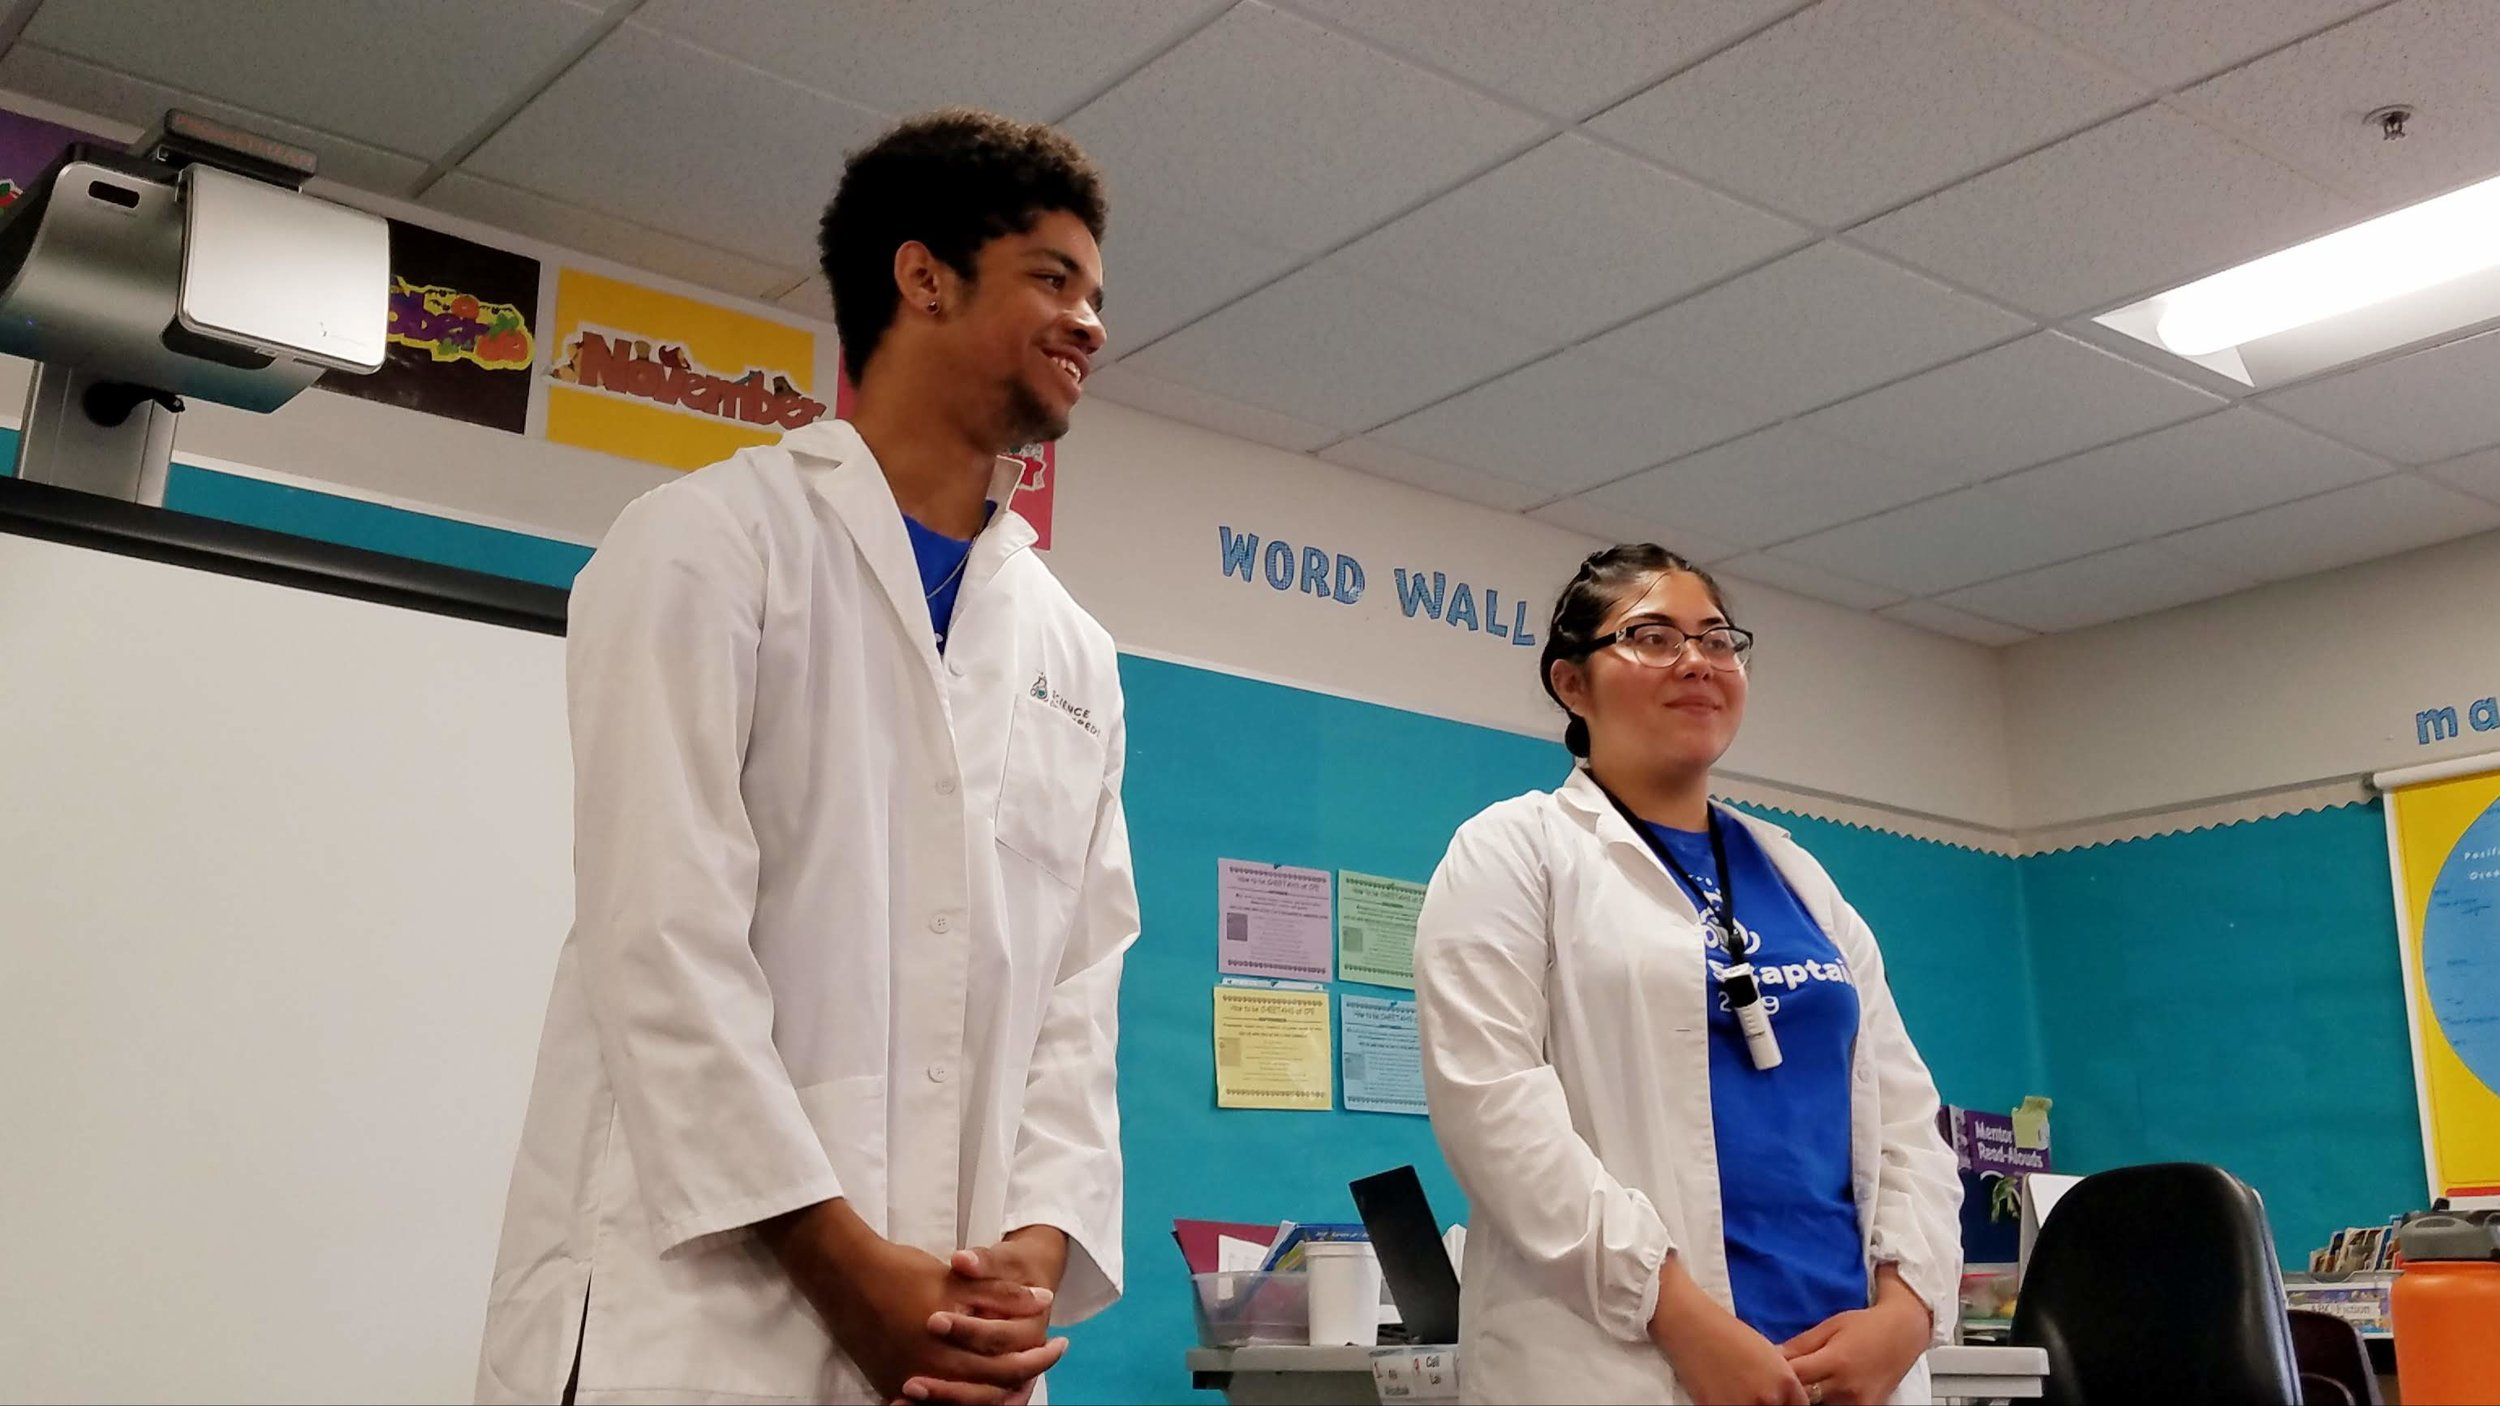 Rahmiir (left) and his partner Rosa teaching a science lab in a 1st grade classroom.